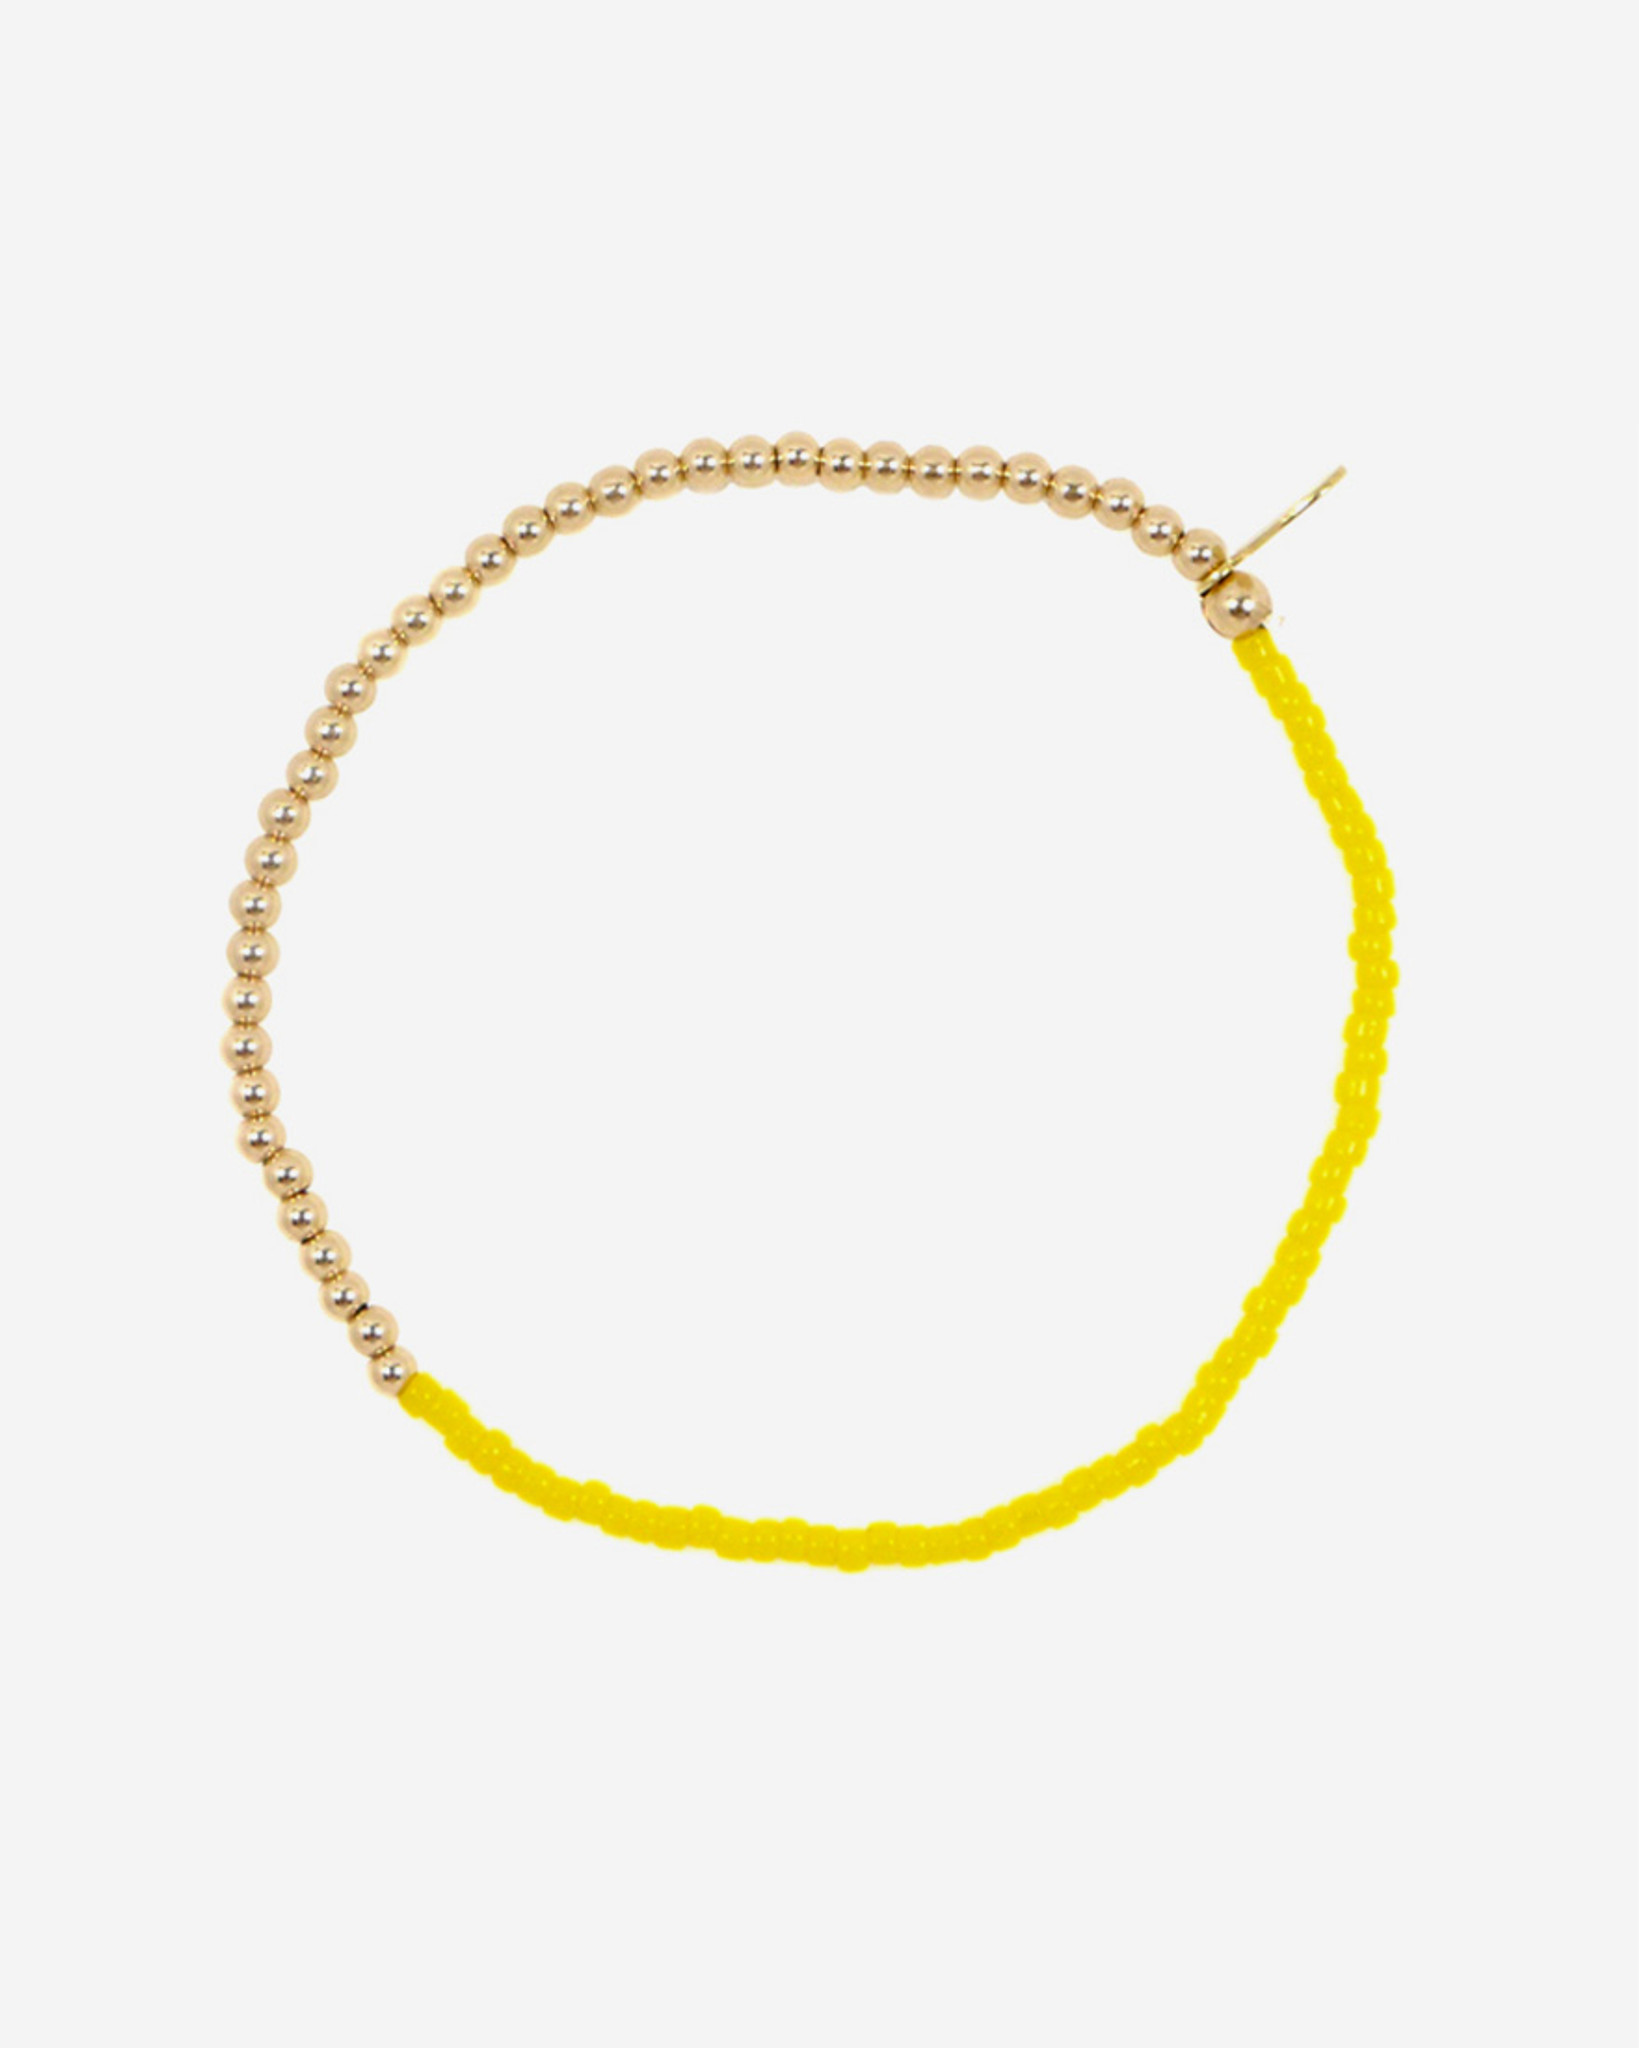 Gold Bead & Bright Yellow Glass Bead Friendship Bracelet by Jewelry Designer Nektar De Stagni